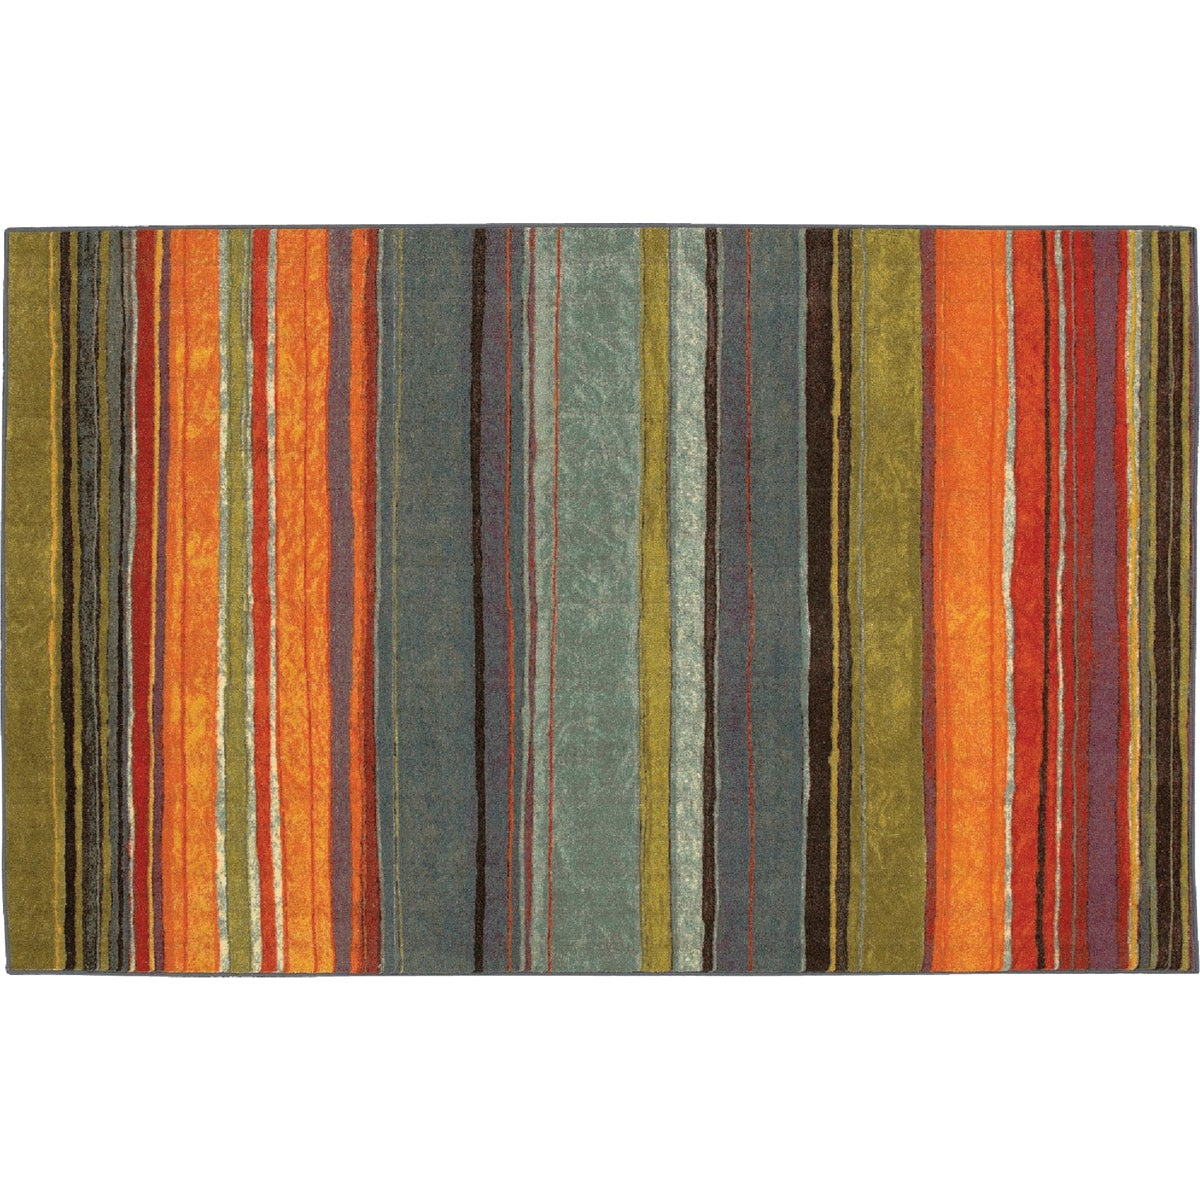 5X8 RAINBOW PRINT RUG - 10474-416-60096 by Mohawk Home Products